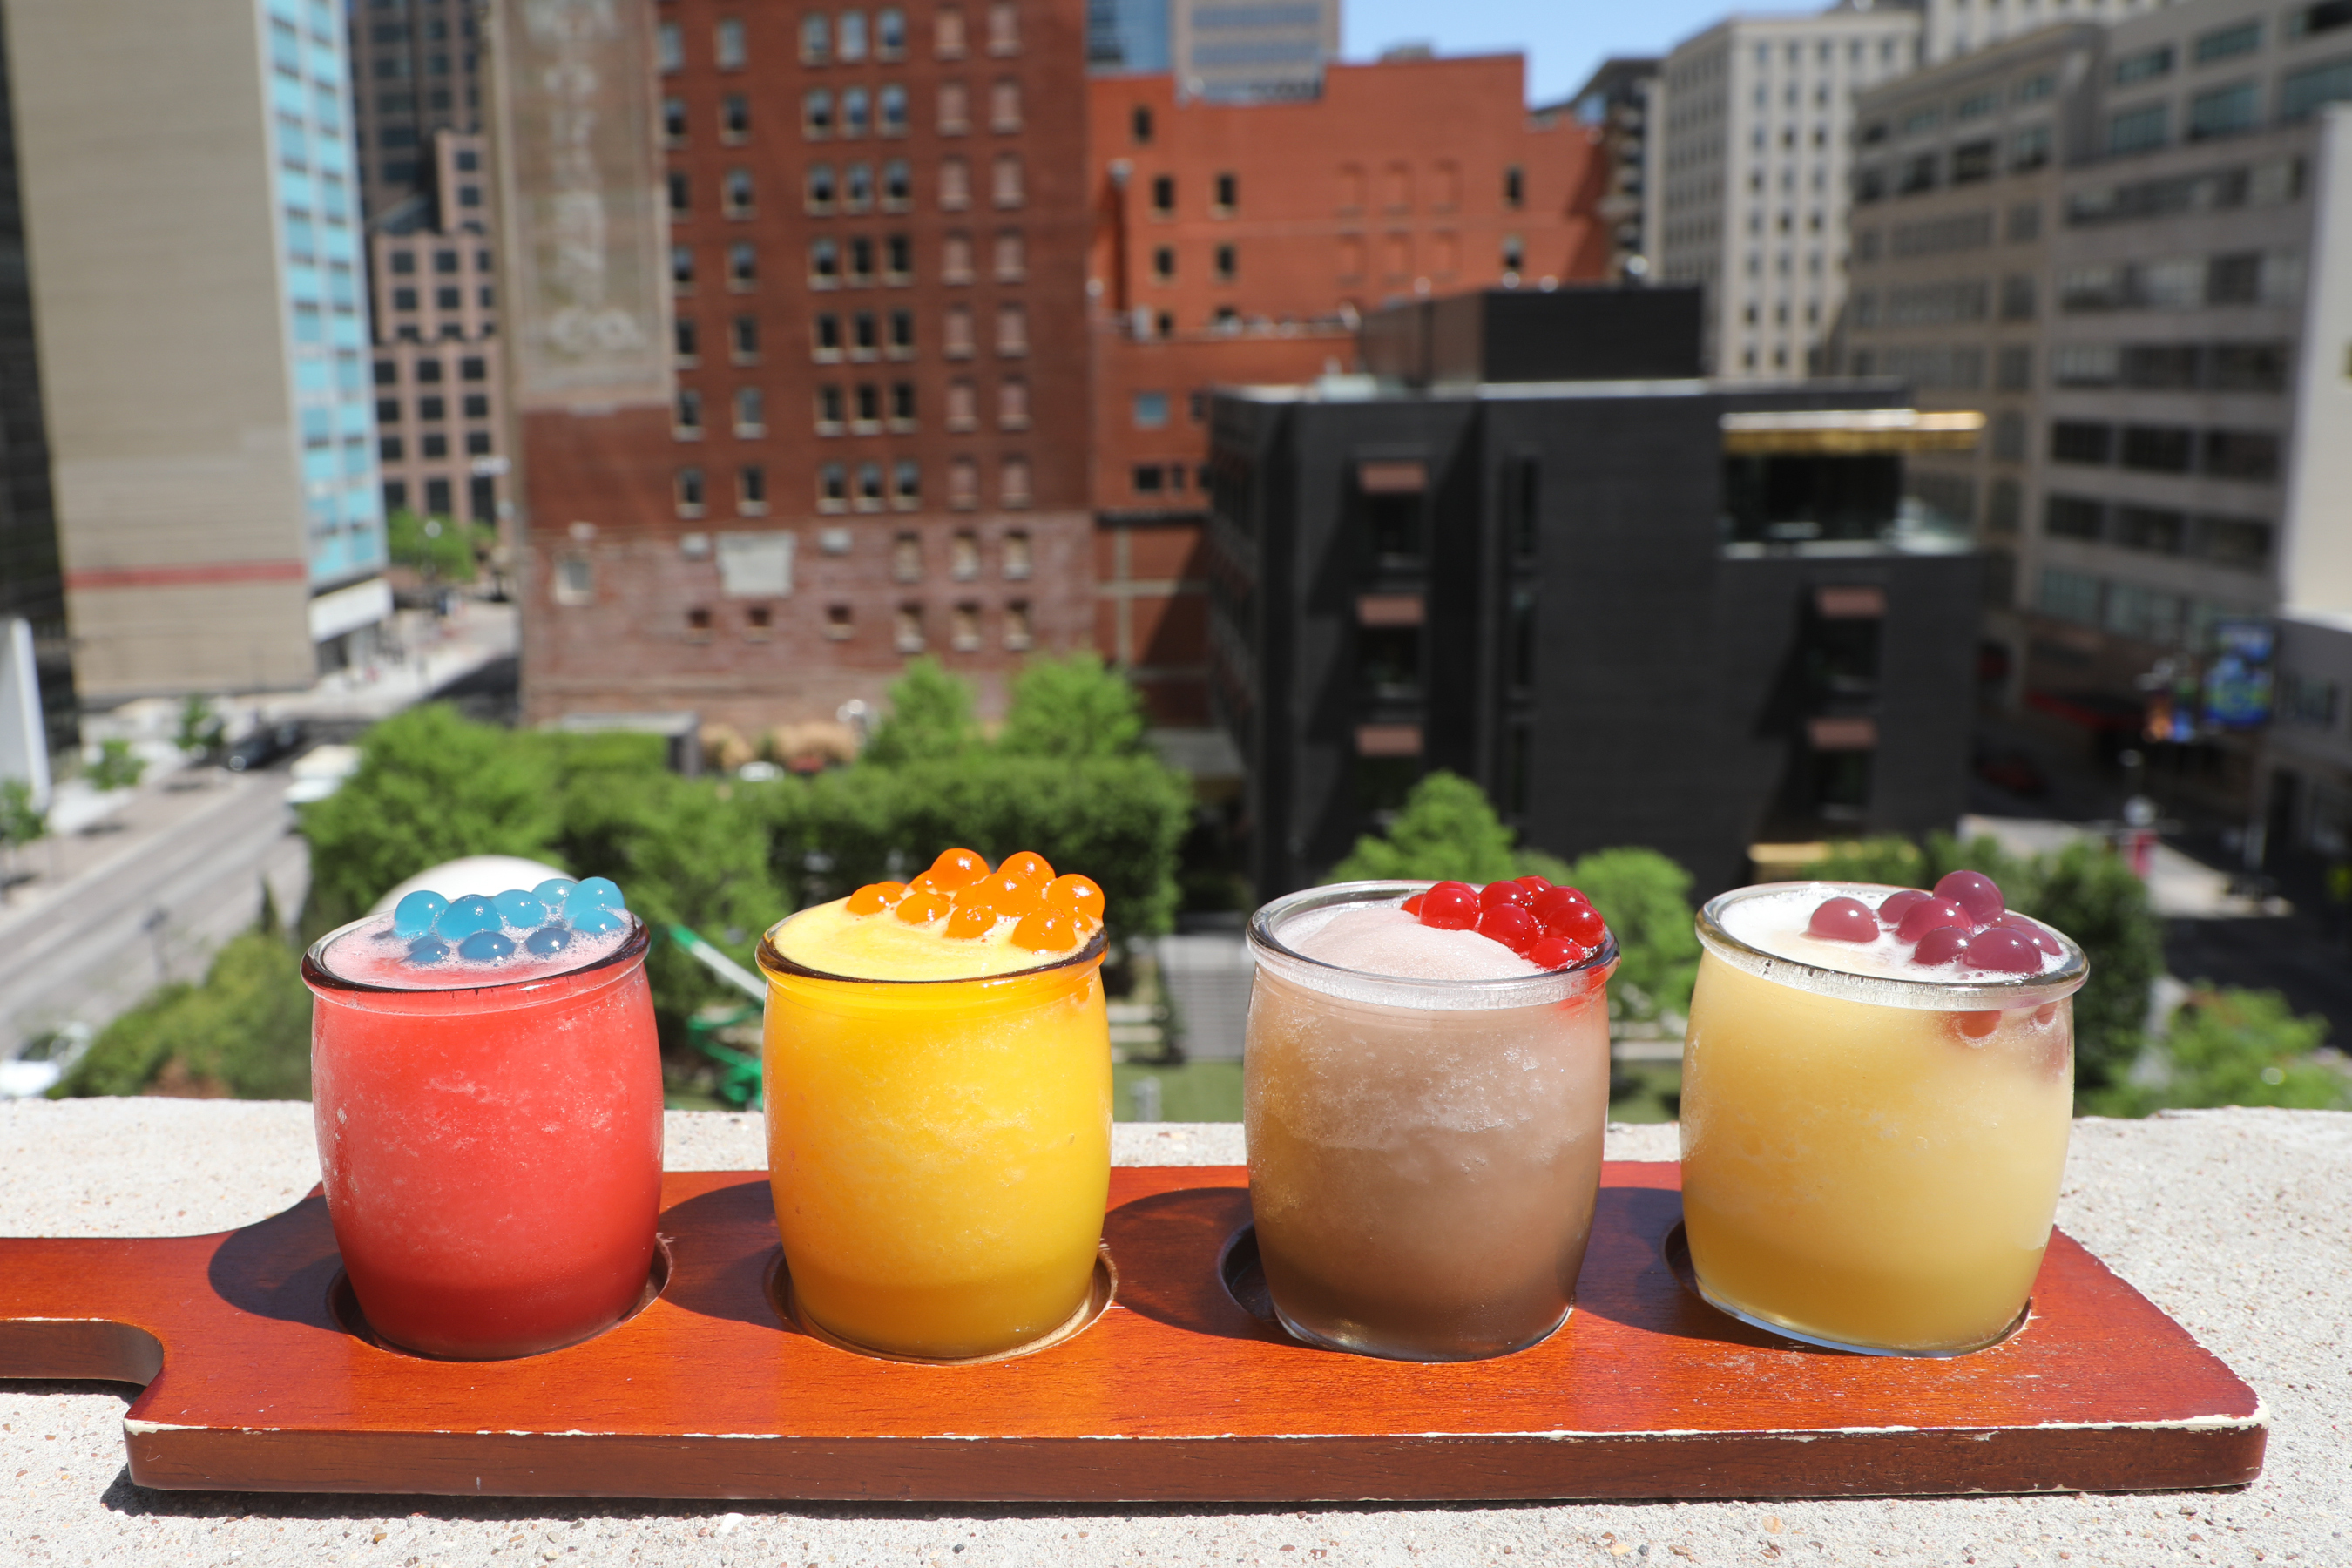 Take your flight to new heights by discovering new flavor combinations using our popping boba!